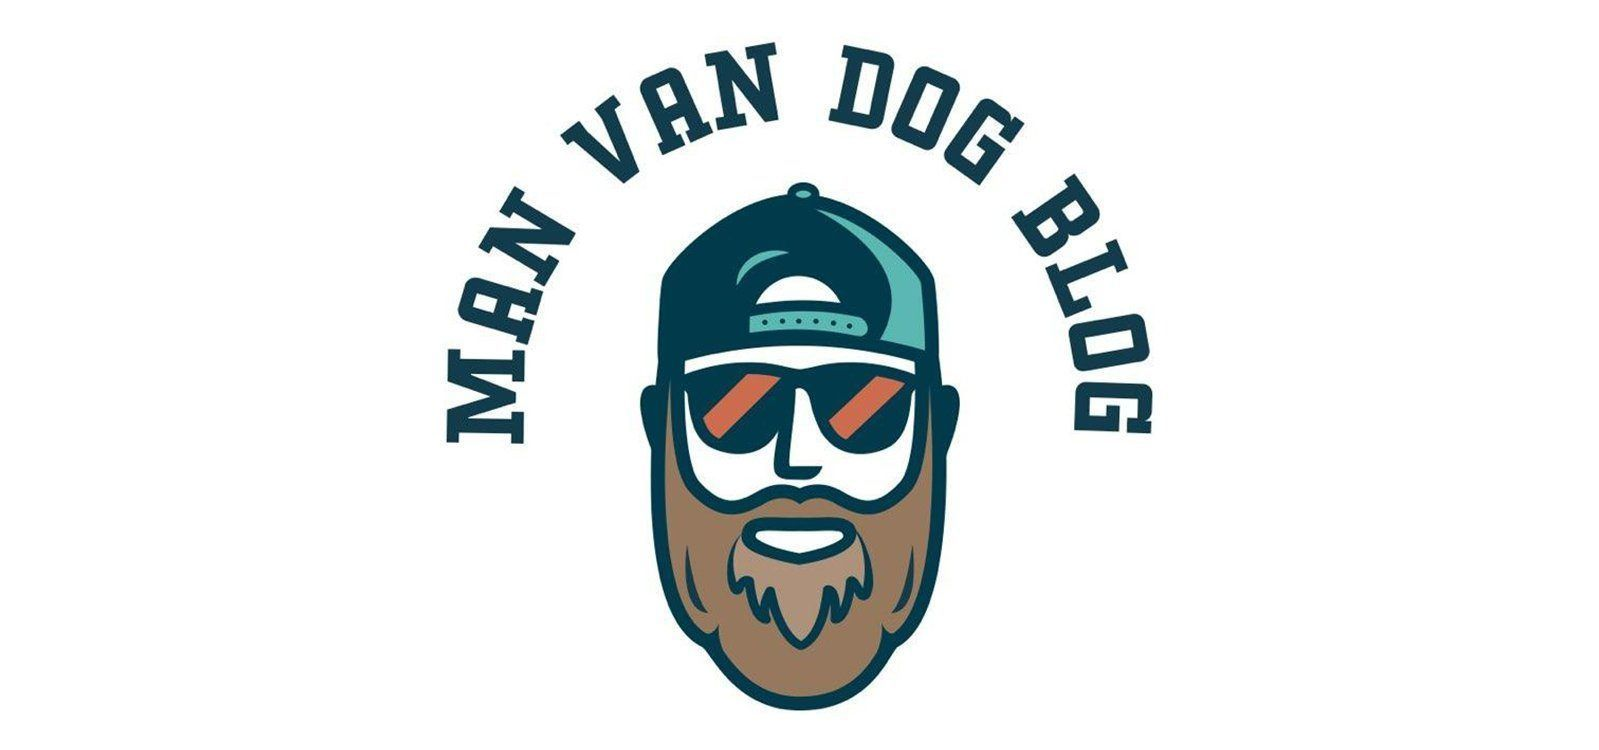 MAN VAN DOG - MEET JOE HAWLEY